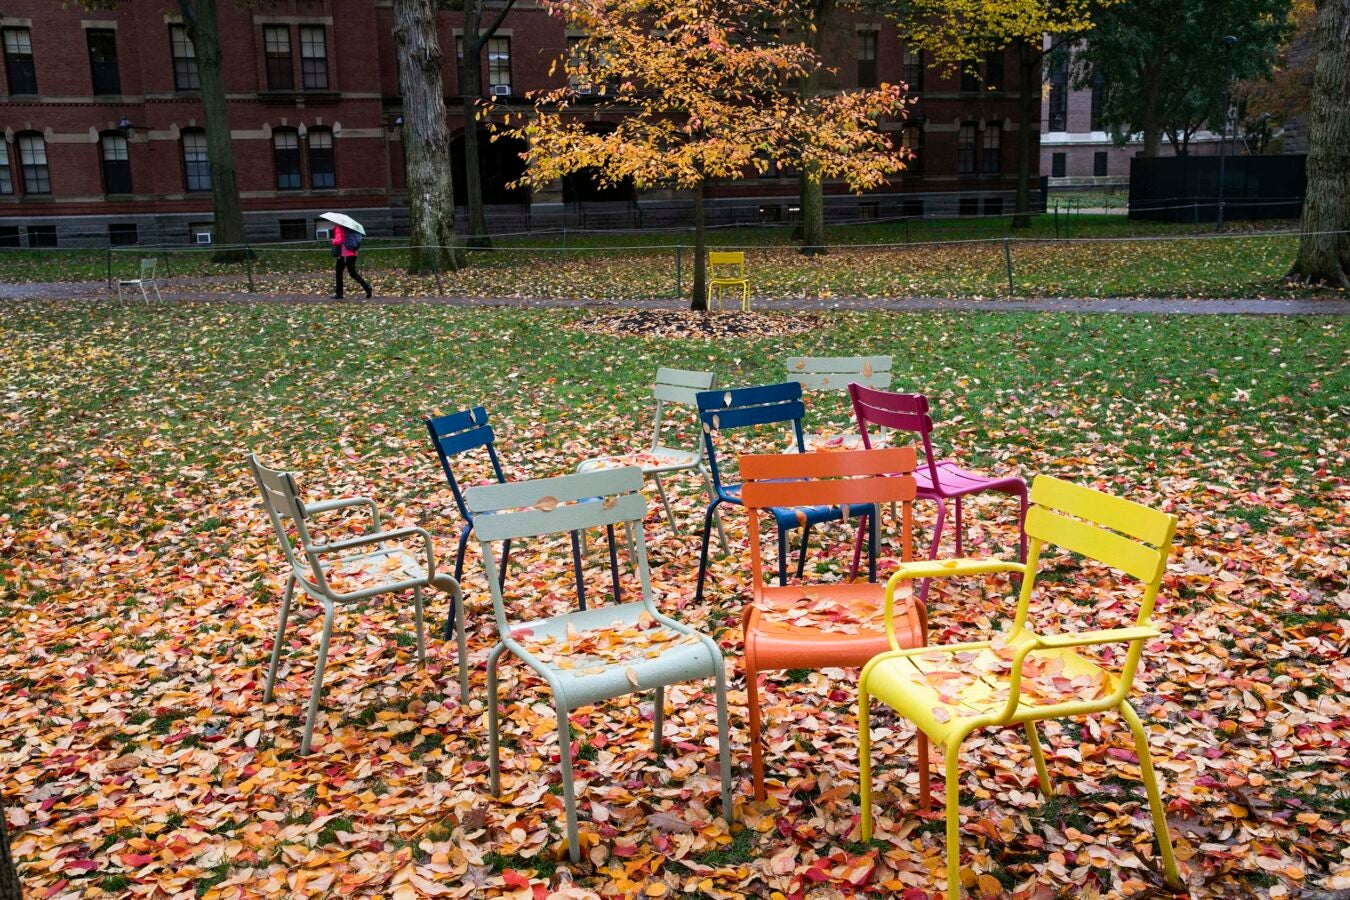 Empty chairs in Harvard Yard, littered with autumn leaves.